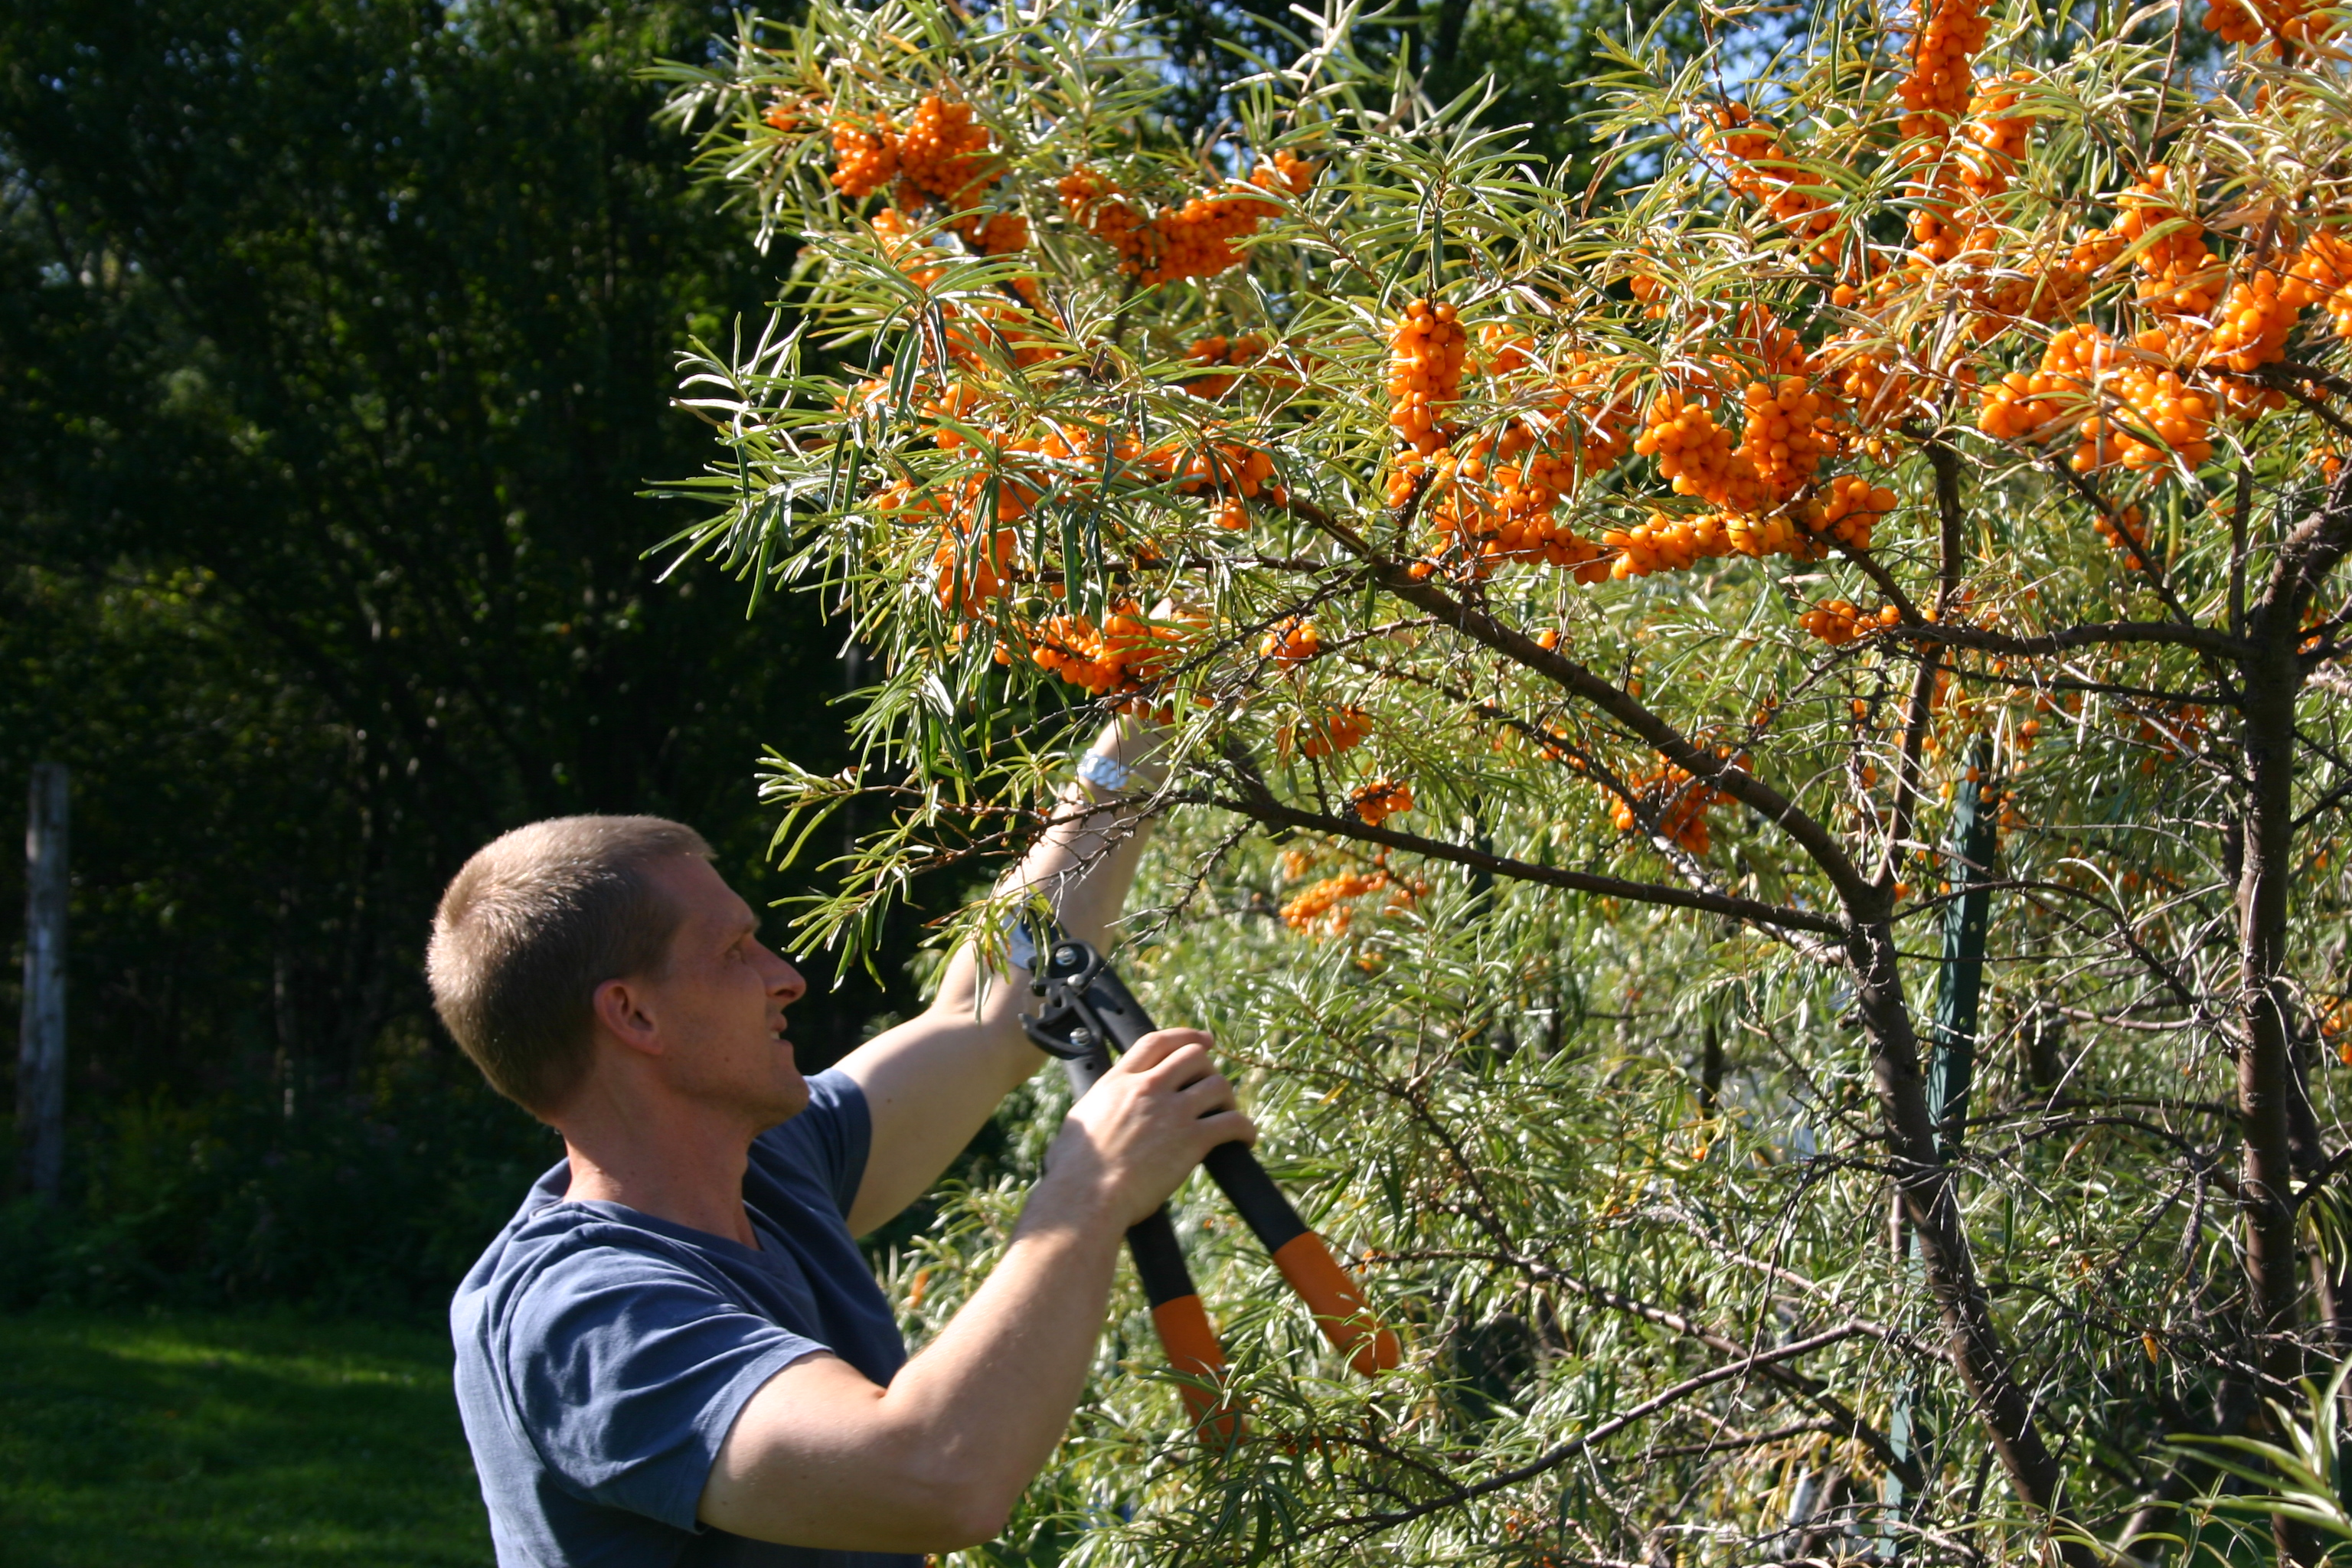 Sea buckthorn insider the cultivation of sea buckthorn for medicinal use - Growing sea buckthorn ...